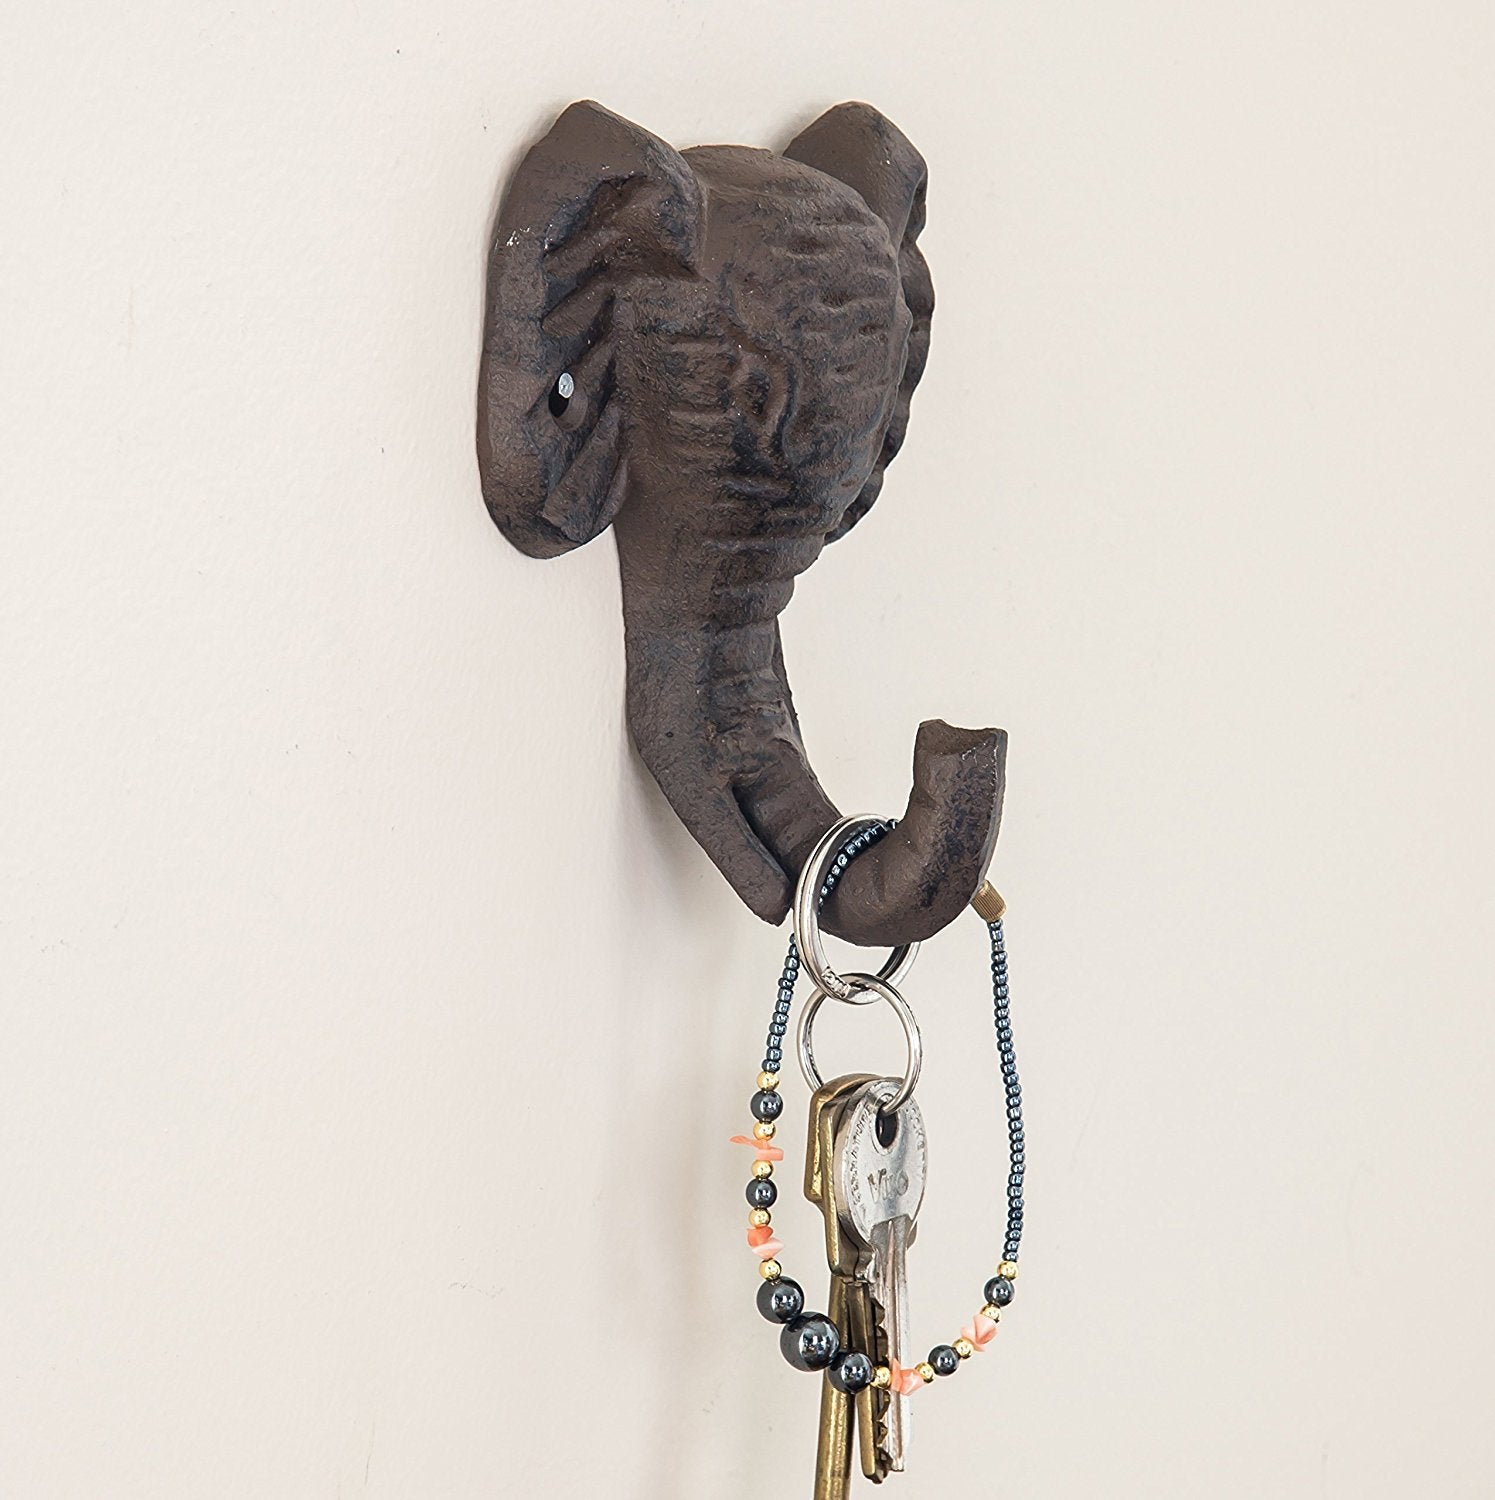 Cast Iron Elephant Single Wall Hook / Hanger | Decorative Wall Mounted Coat Hook | Rustic Cast Iron | 3.7x2.2x4.7"